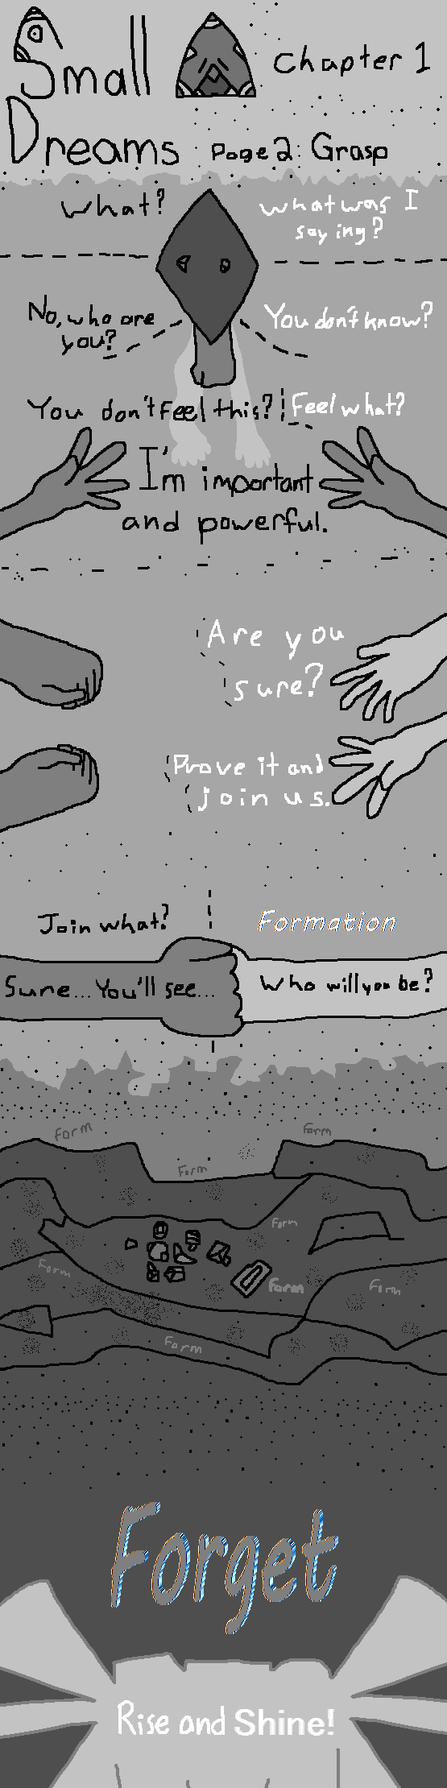 Small Dreams Chapter 1 Page 2: Grasp(SU FanComic) by GIRGHGH